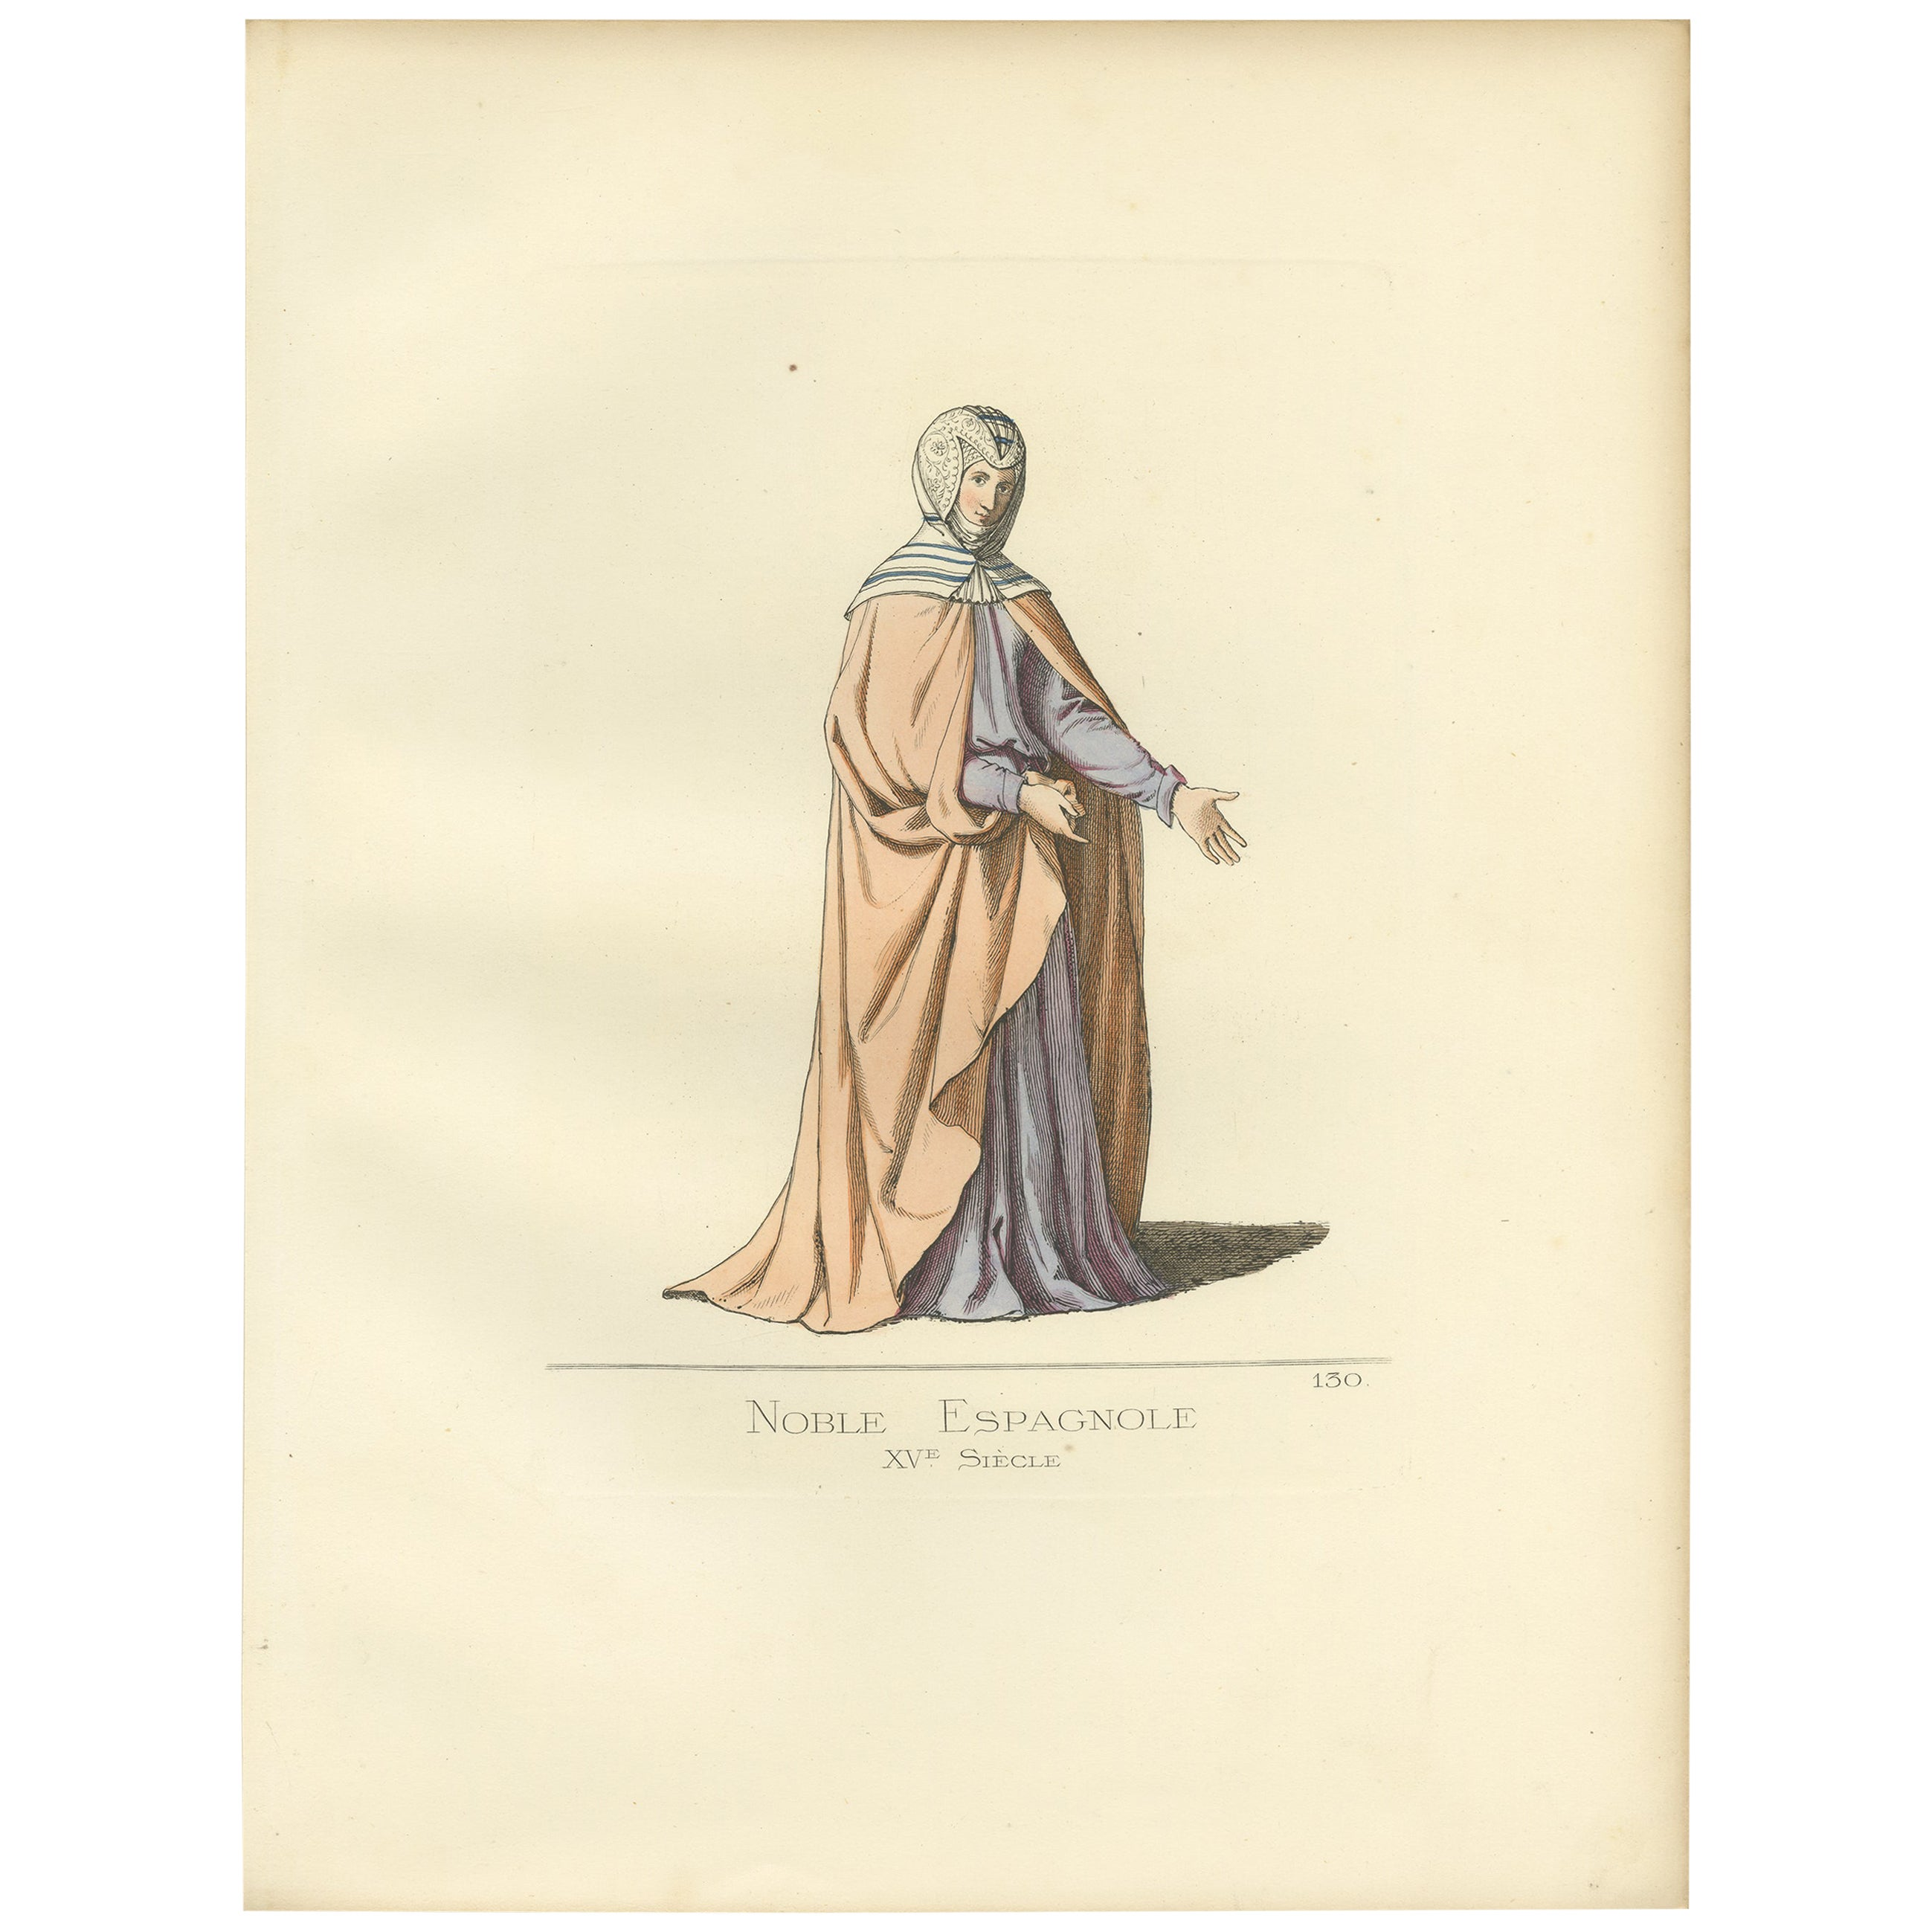 Antique Print of a Spanish Noblewoman, 15th Century, by Bonnard, 1860